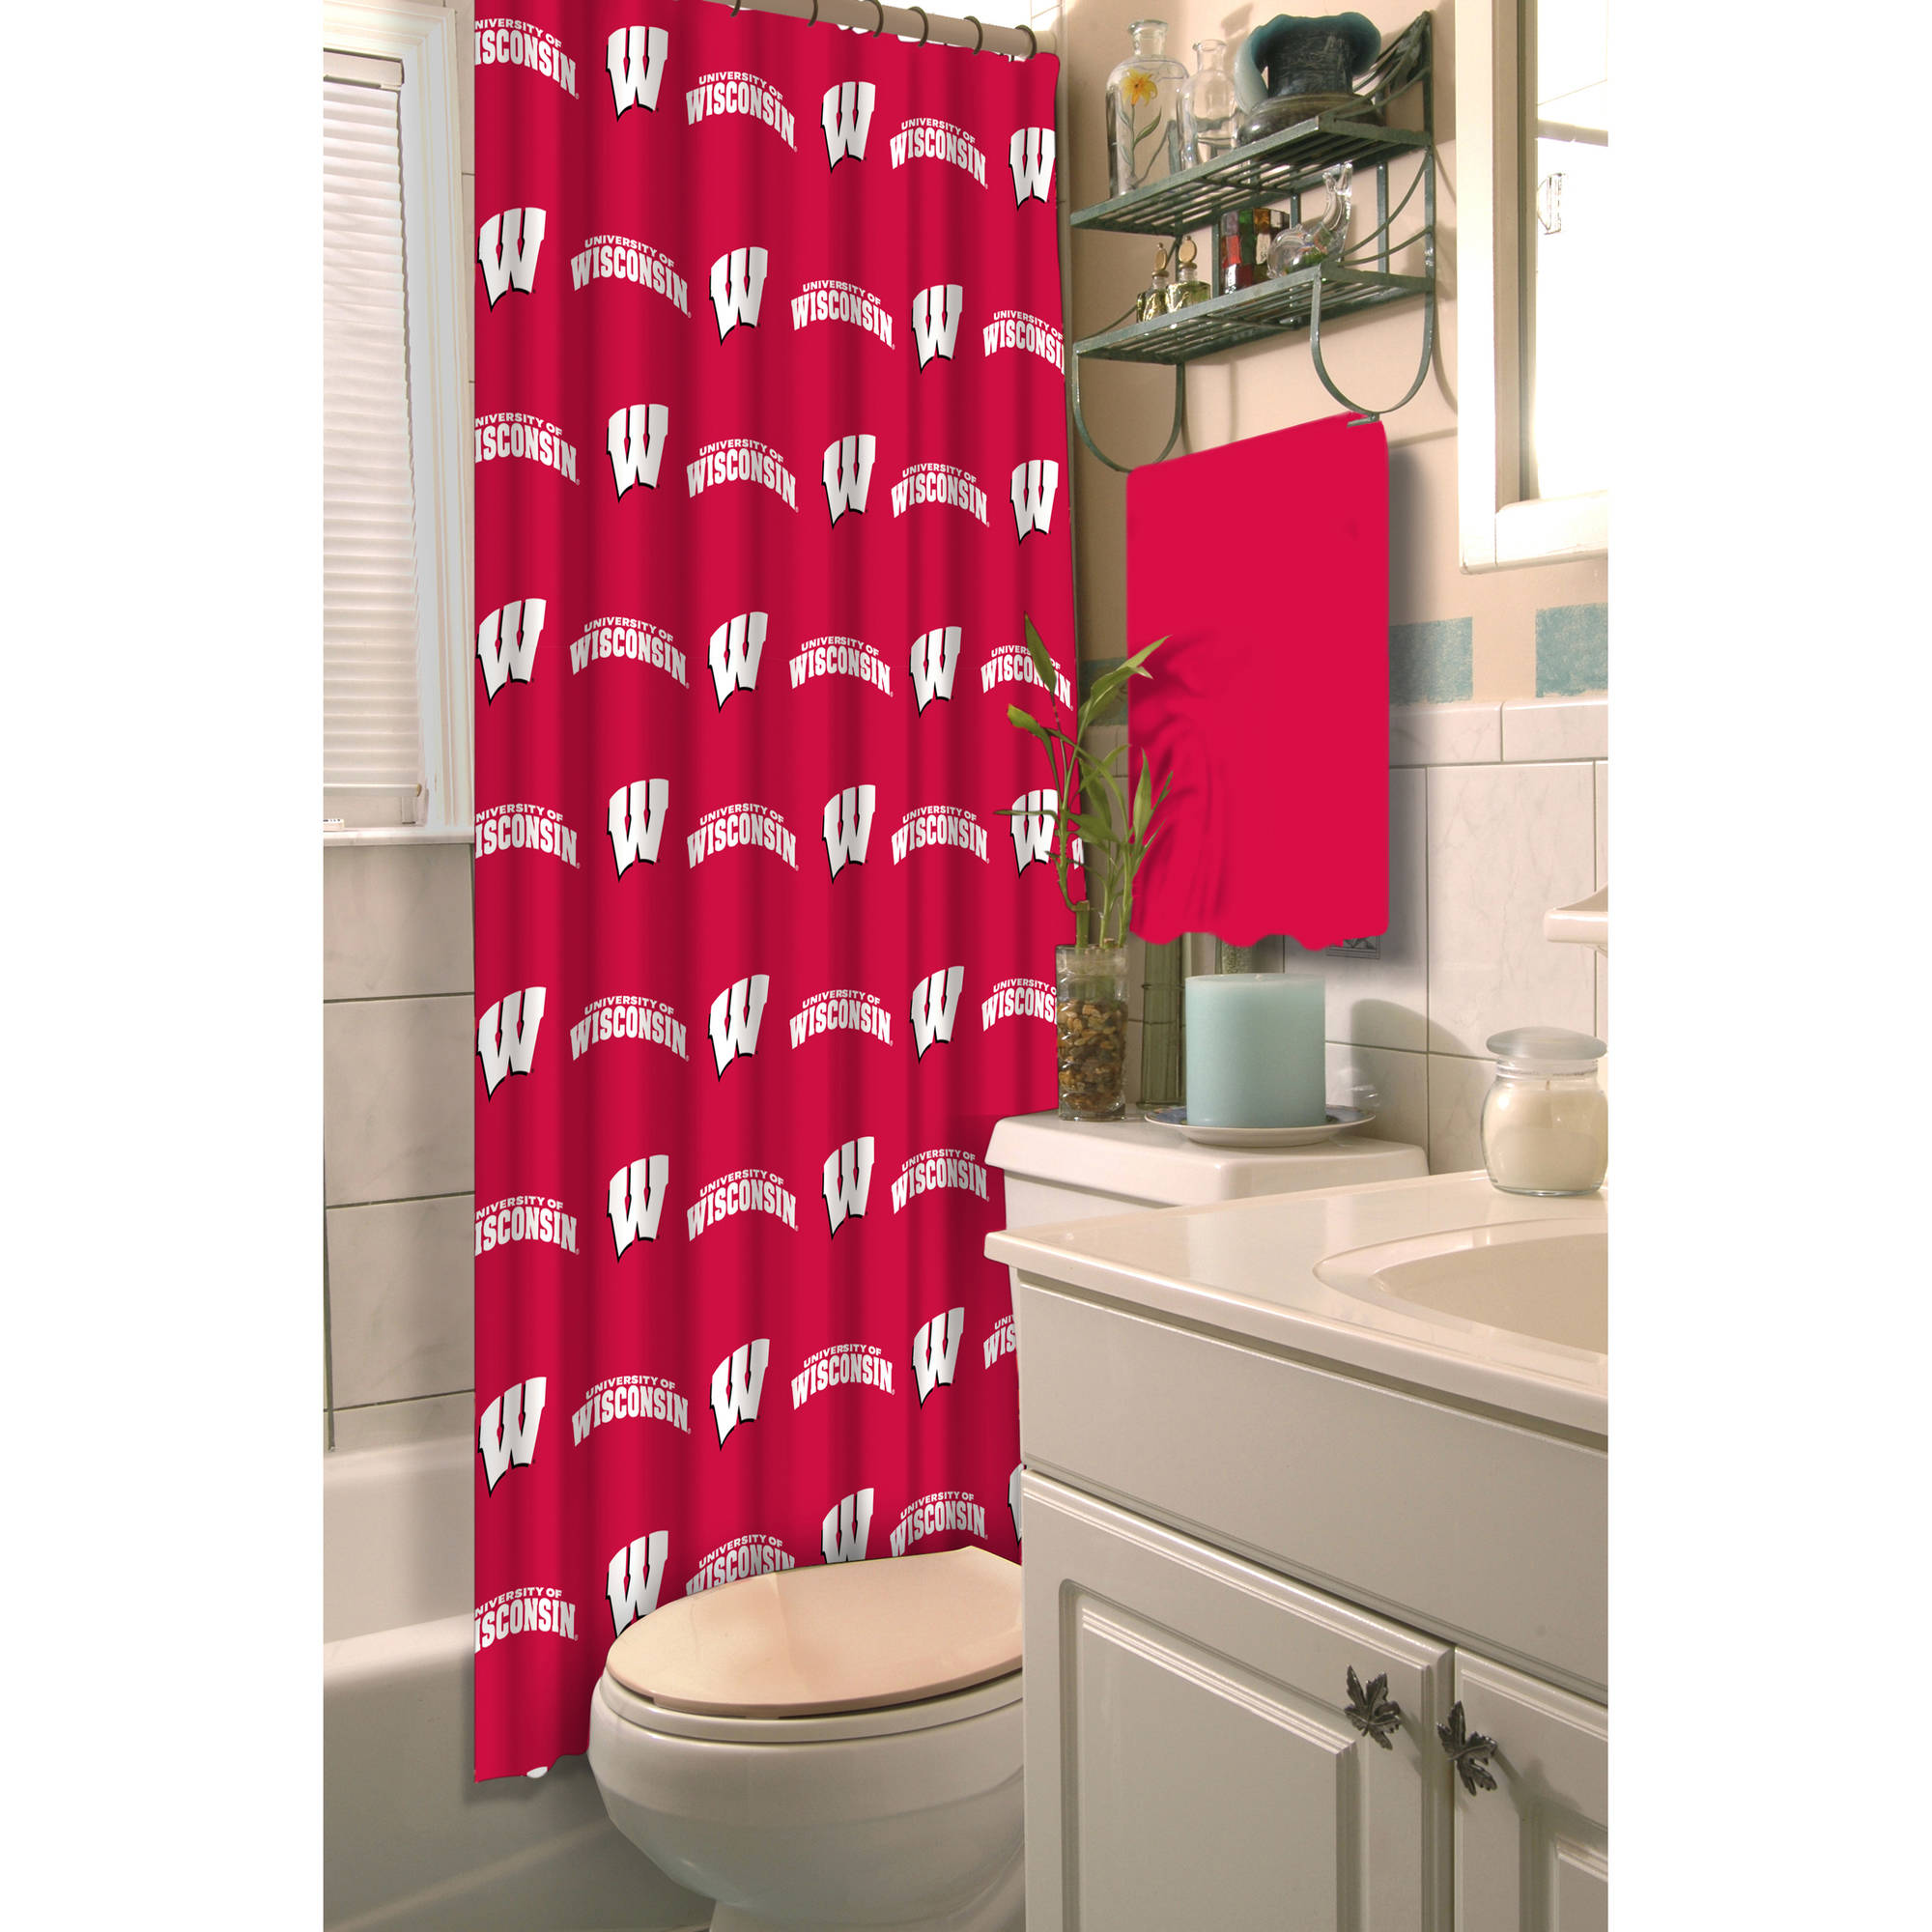 NCAA Shower Curtain, Wisconsin